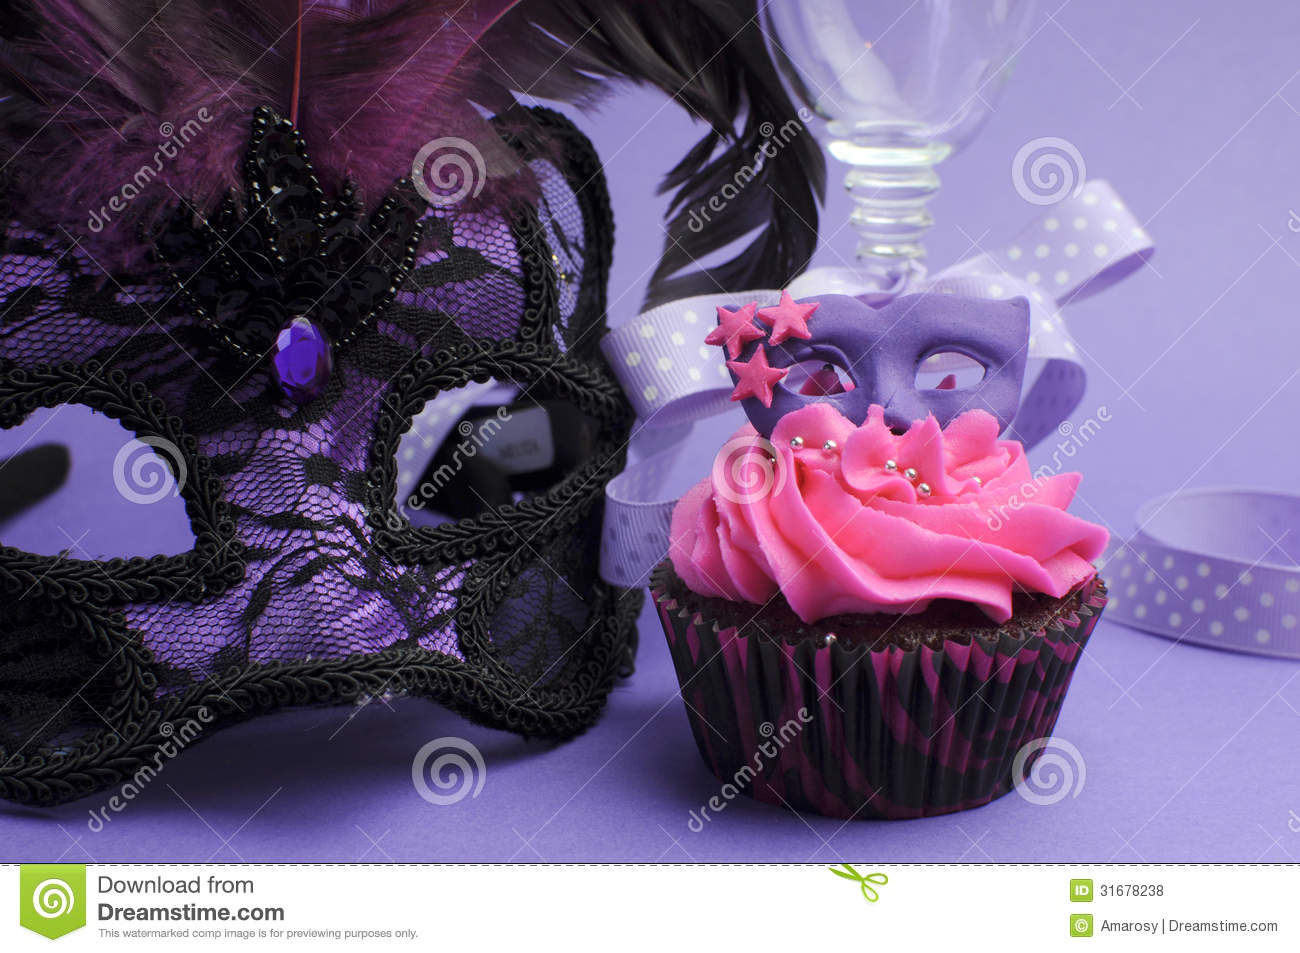 Purple Masquerade Party Decorations Close Up Stock Photo